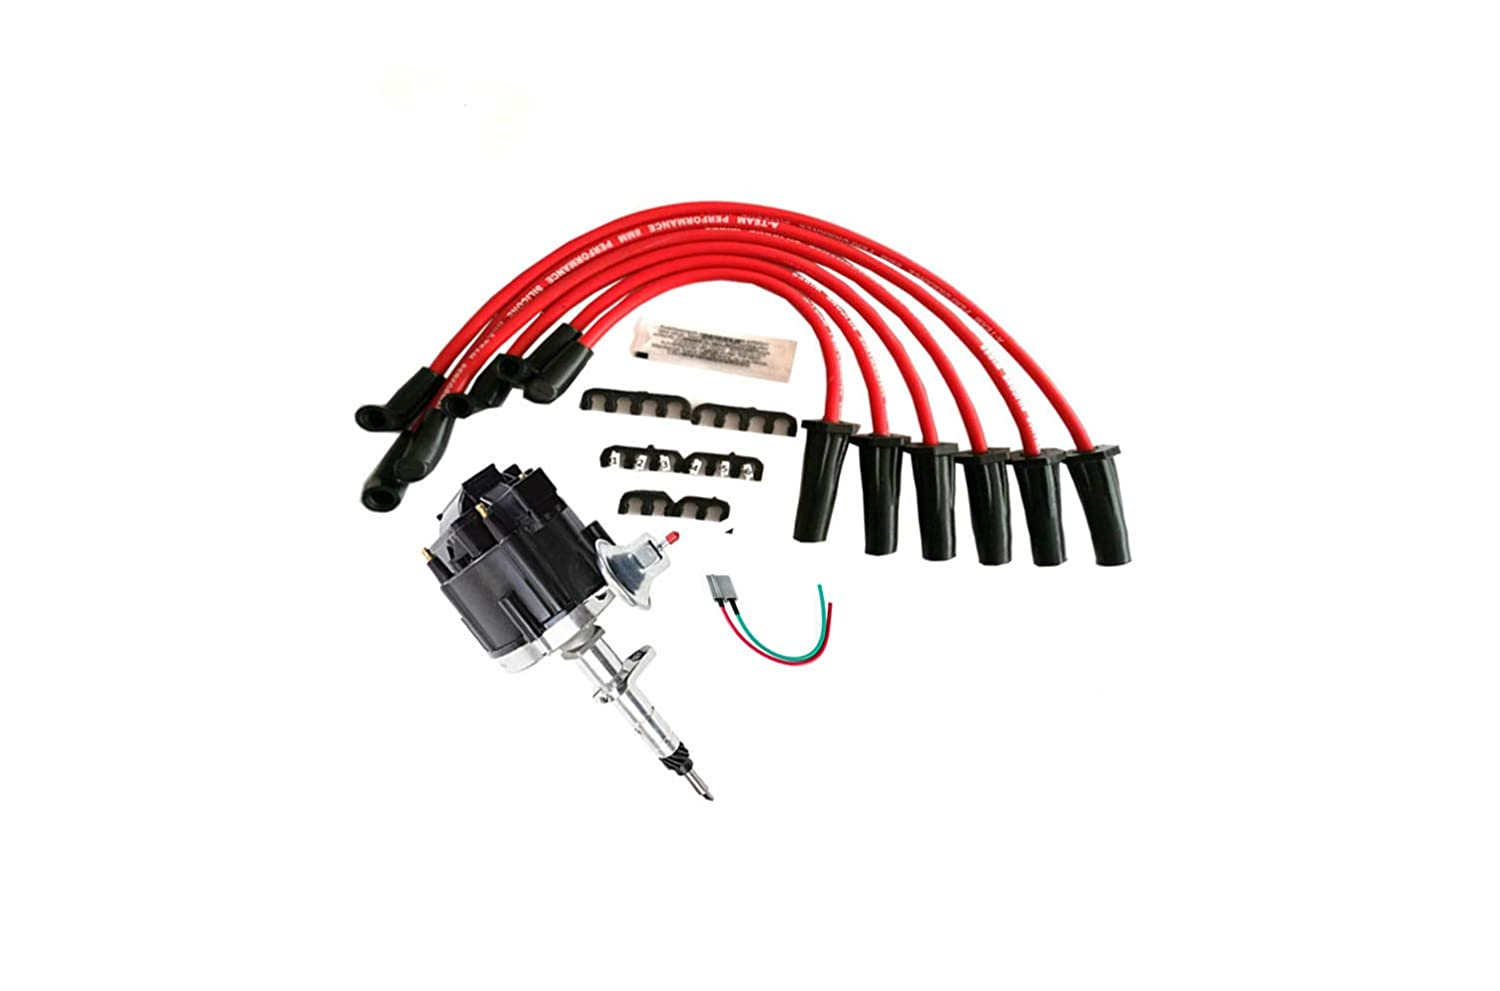 and Pigtail Wiring Harness 3-in-1 Kit Compatible with Straight 6 41-62 194 216 235 68-87 Early Chevrolet T Red Spark Plug Wires Set A-Team Performance 65K COIL HEI Distributor Black Cap